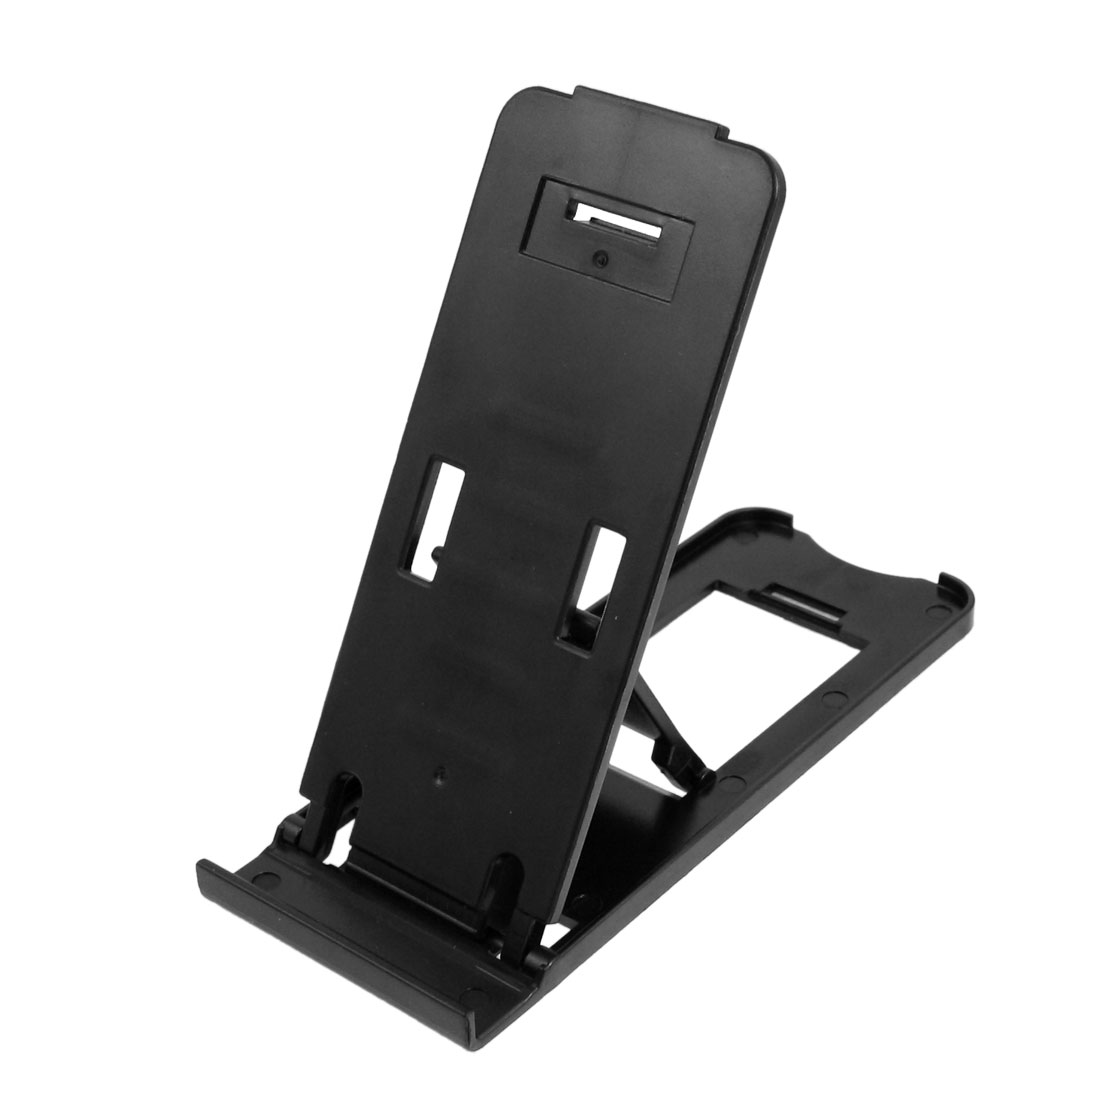 Black Plastic Folding Bracket Stand Holder for Apple iPhone iPad